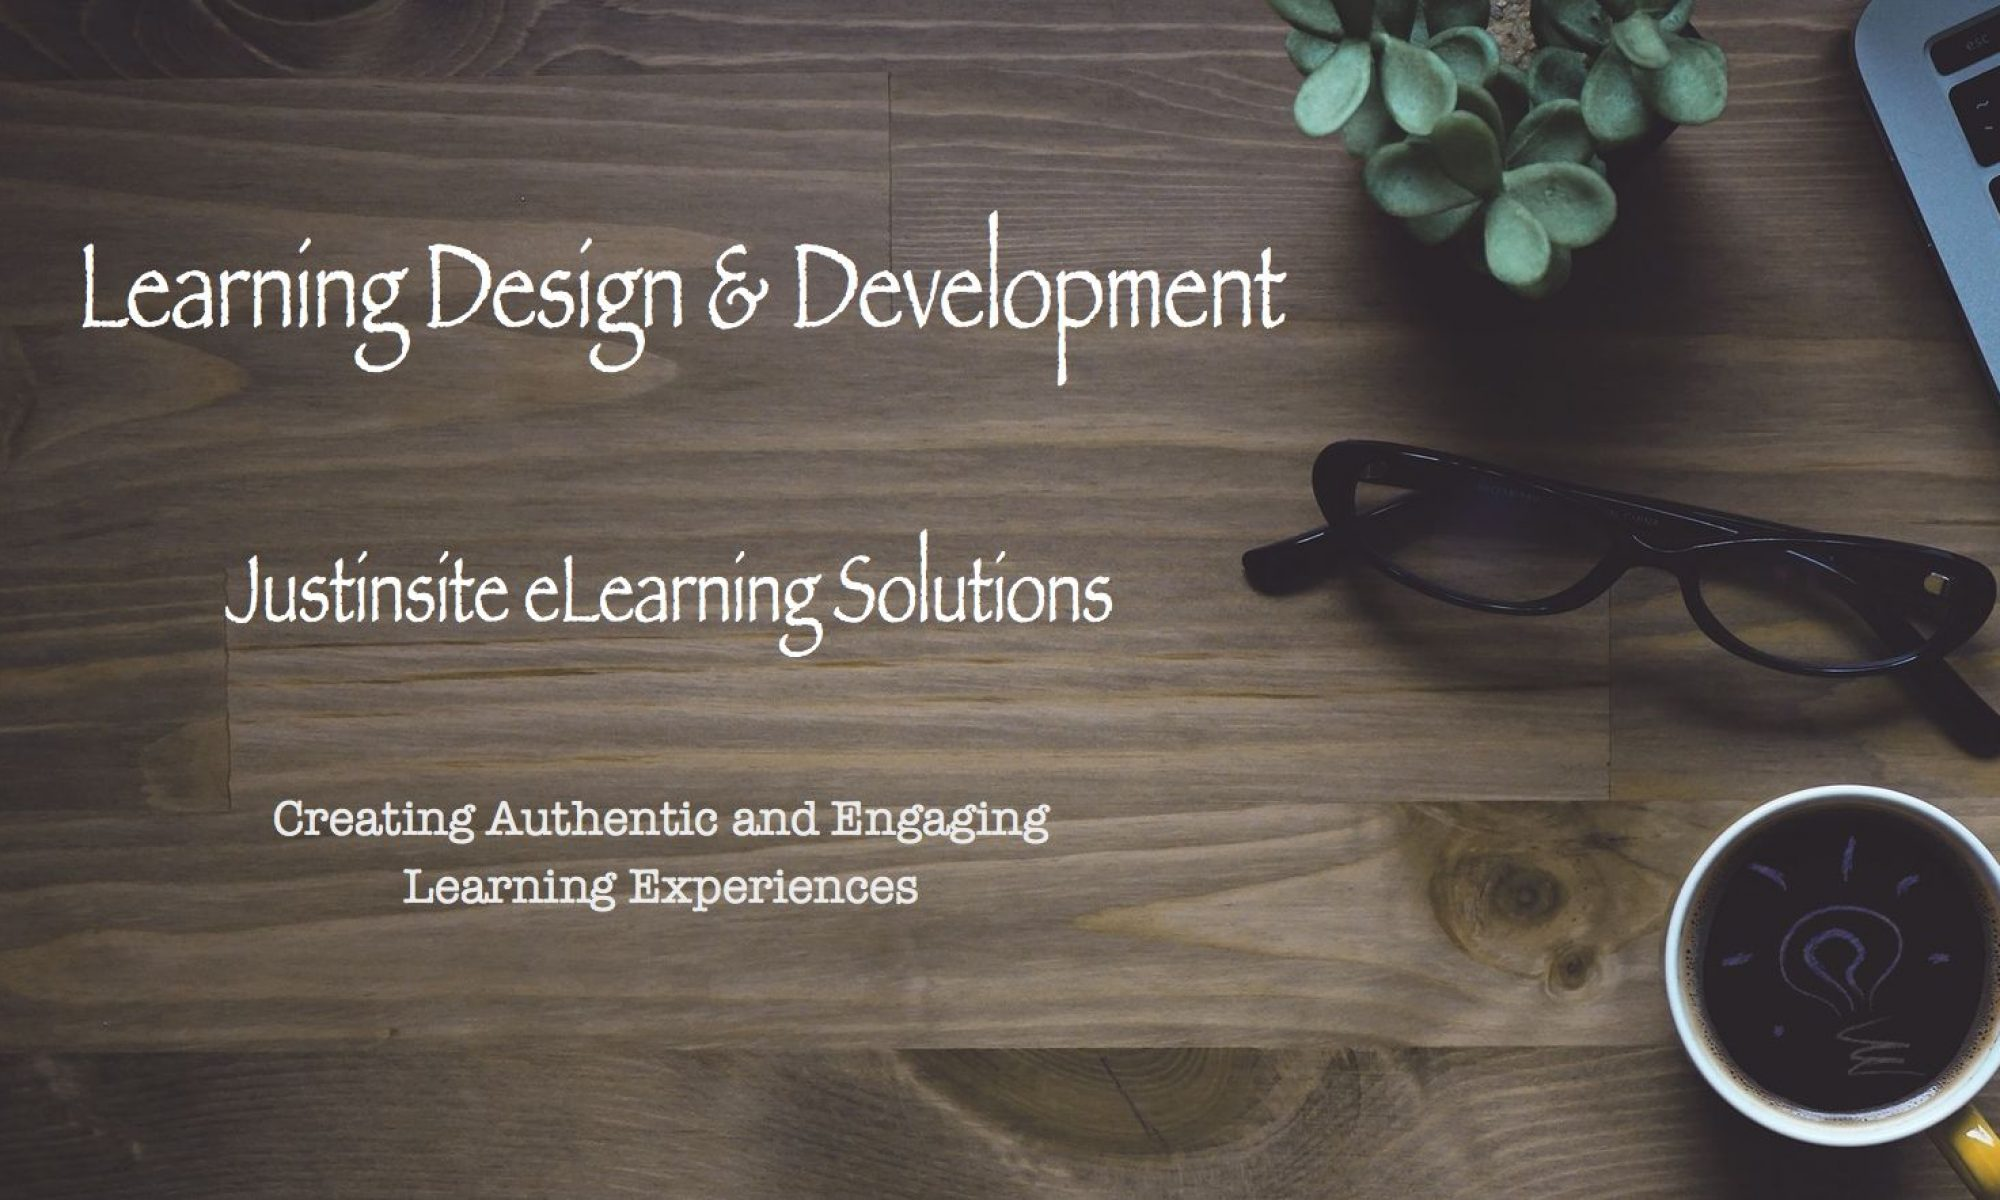 Justinsite eLearning Solutions